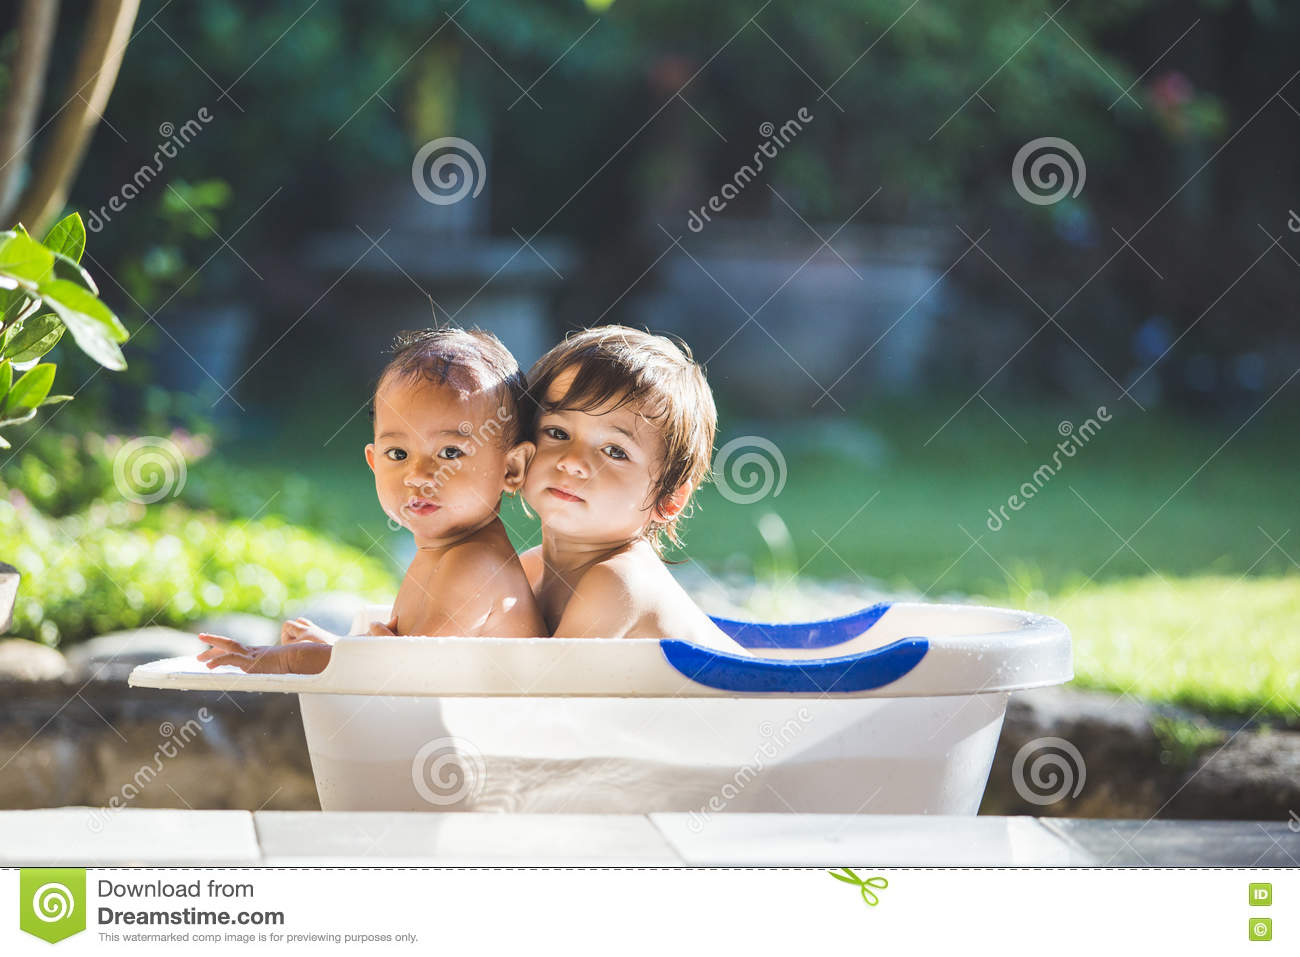 Two babies taking a bath together